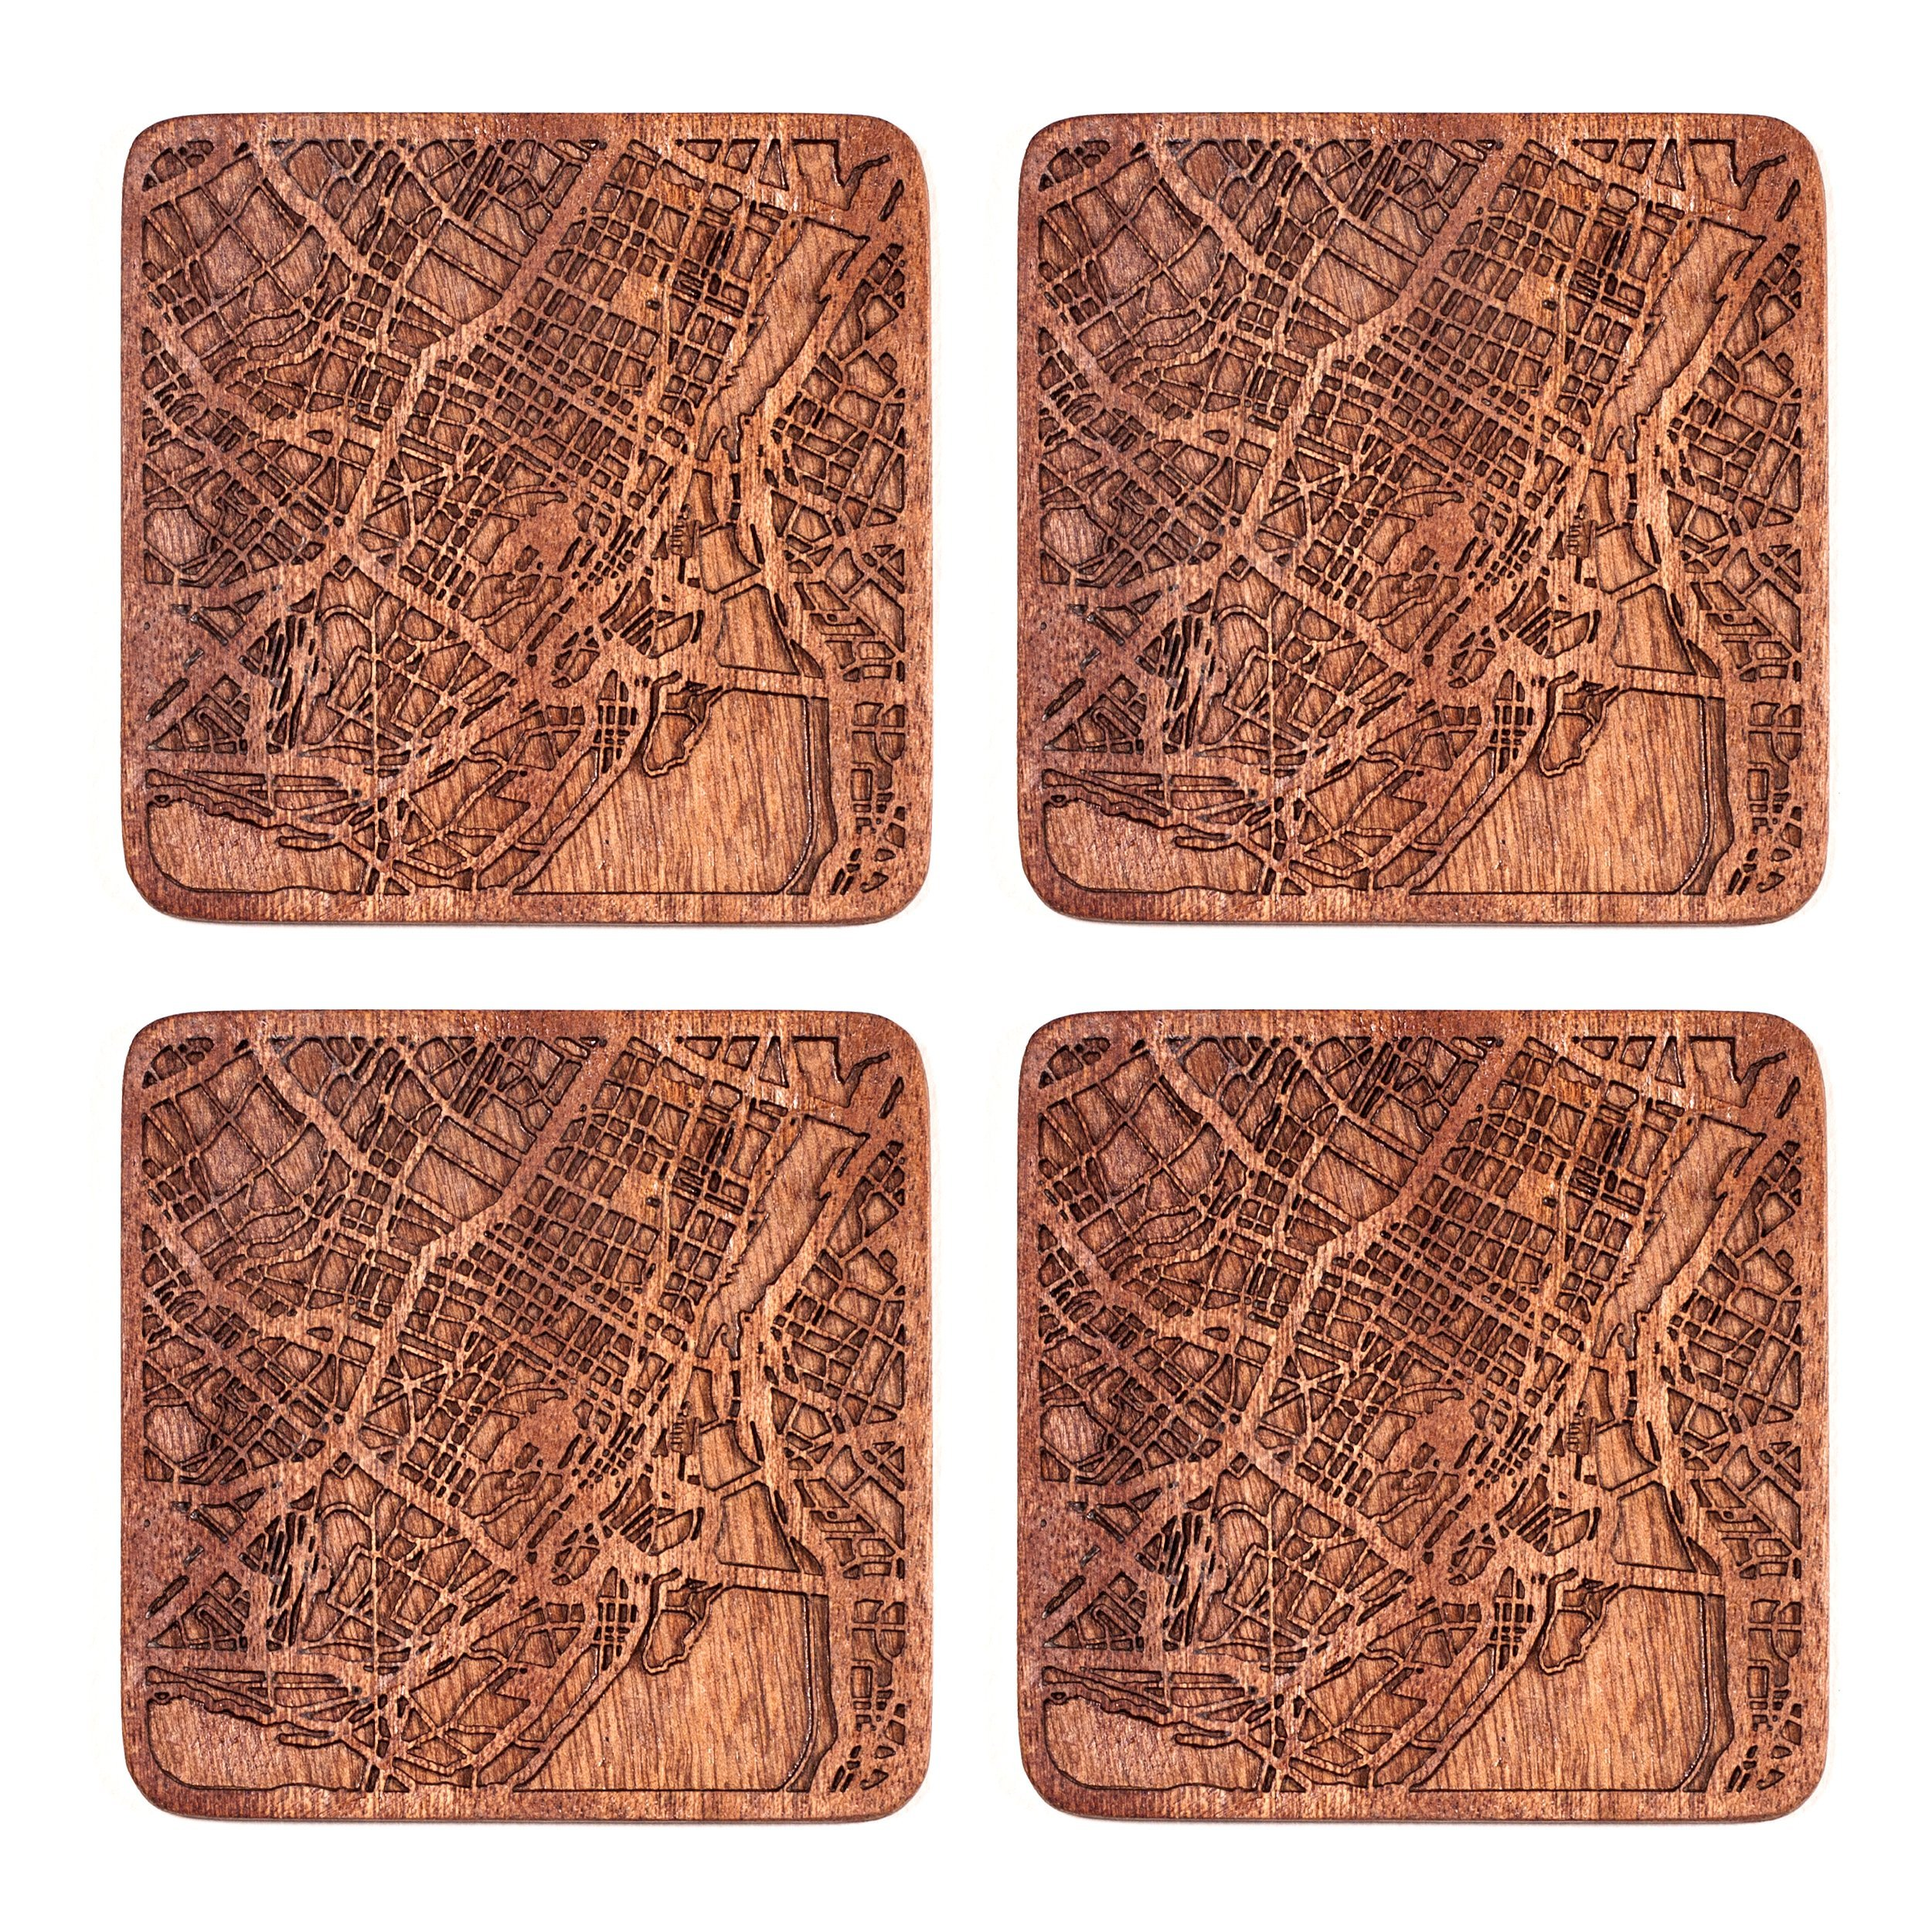 Montreal Map Coaster by O3 Design Studio, Set Of